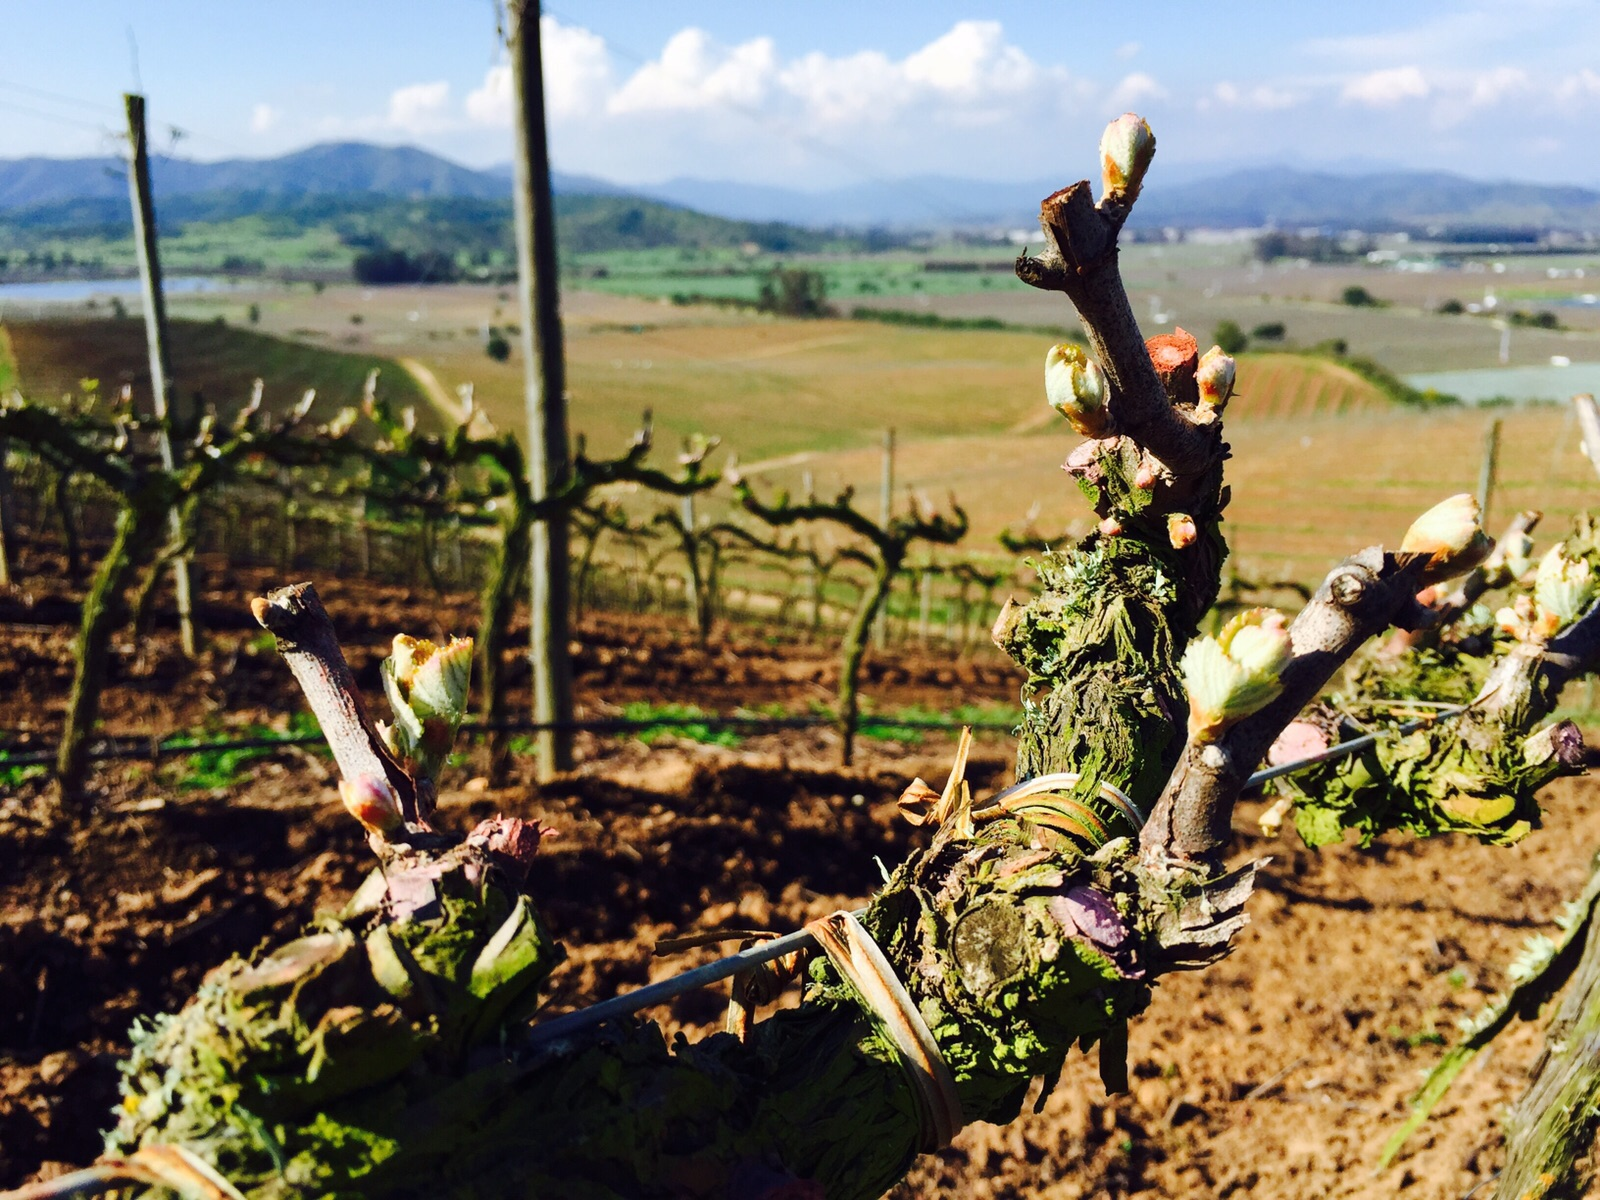 Hope springs, bud break reaches the vineyards